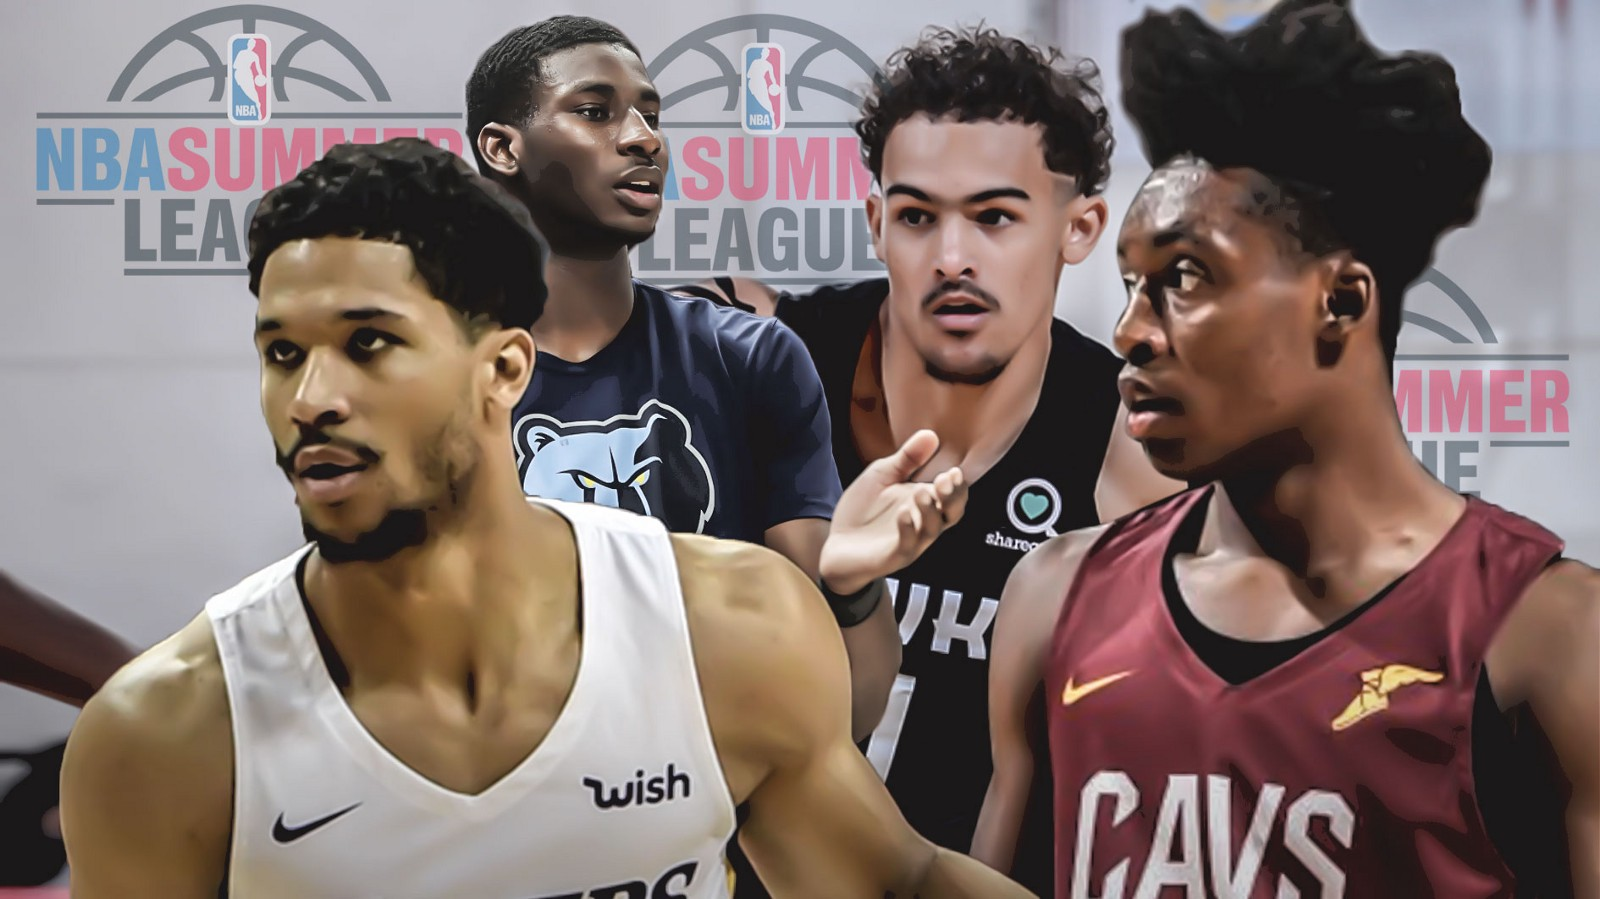 e882a6d48999 The Great 2018 NBA Summer League Analysis Manifesto